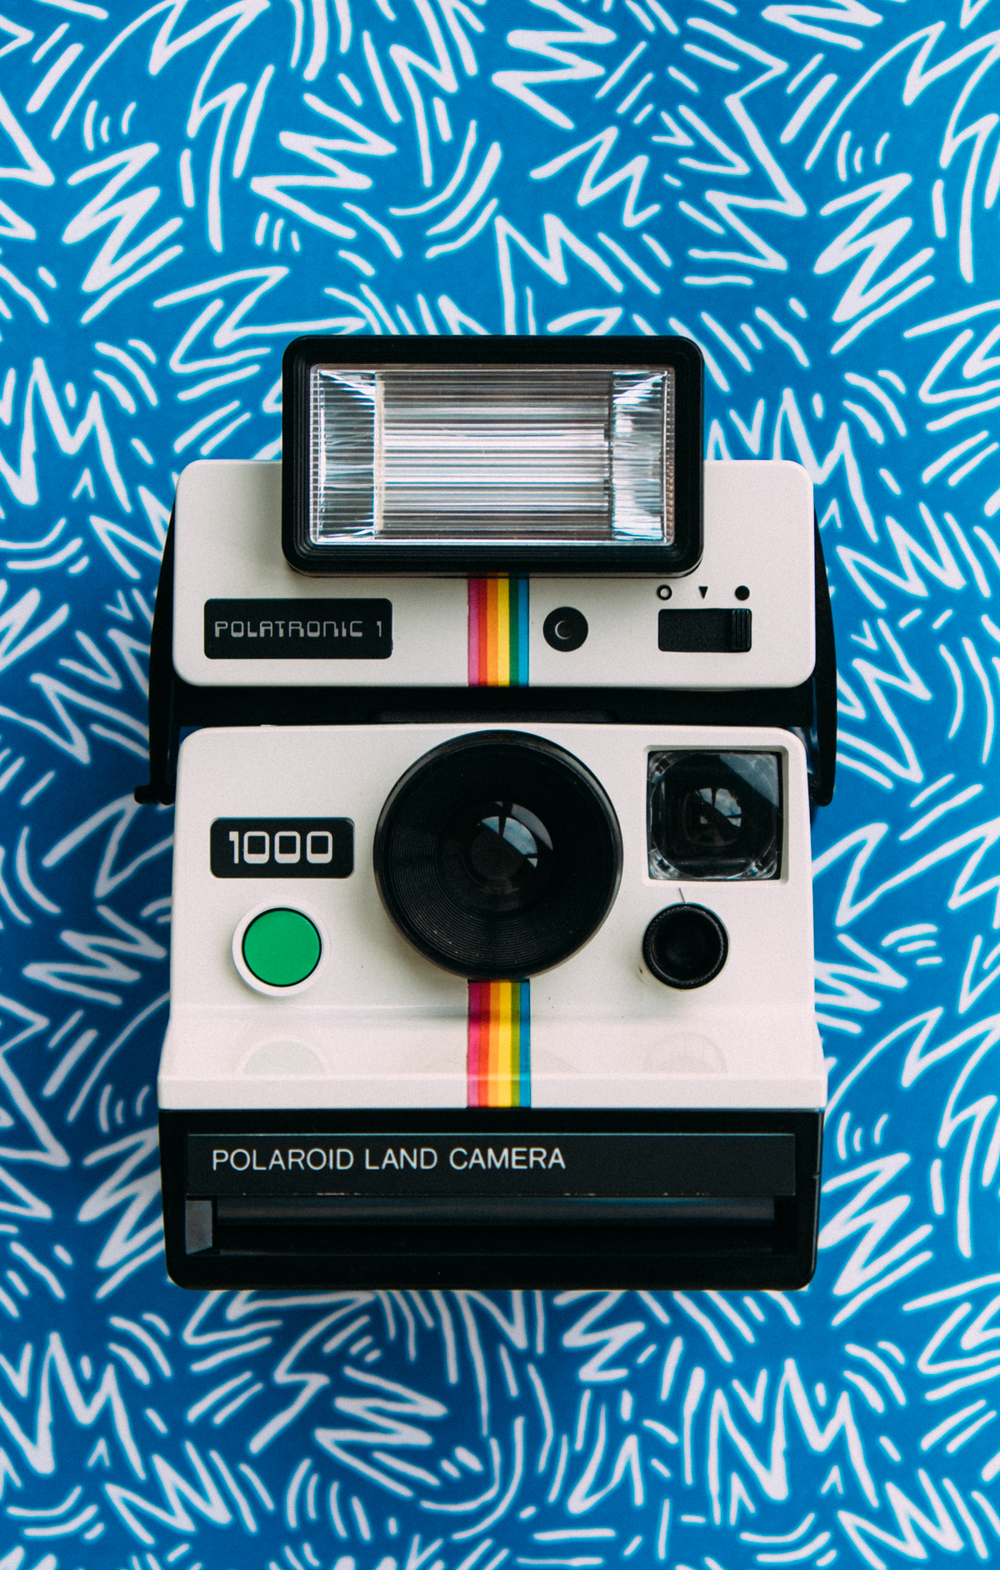 Using a Polaroid 1000 Land Camera